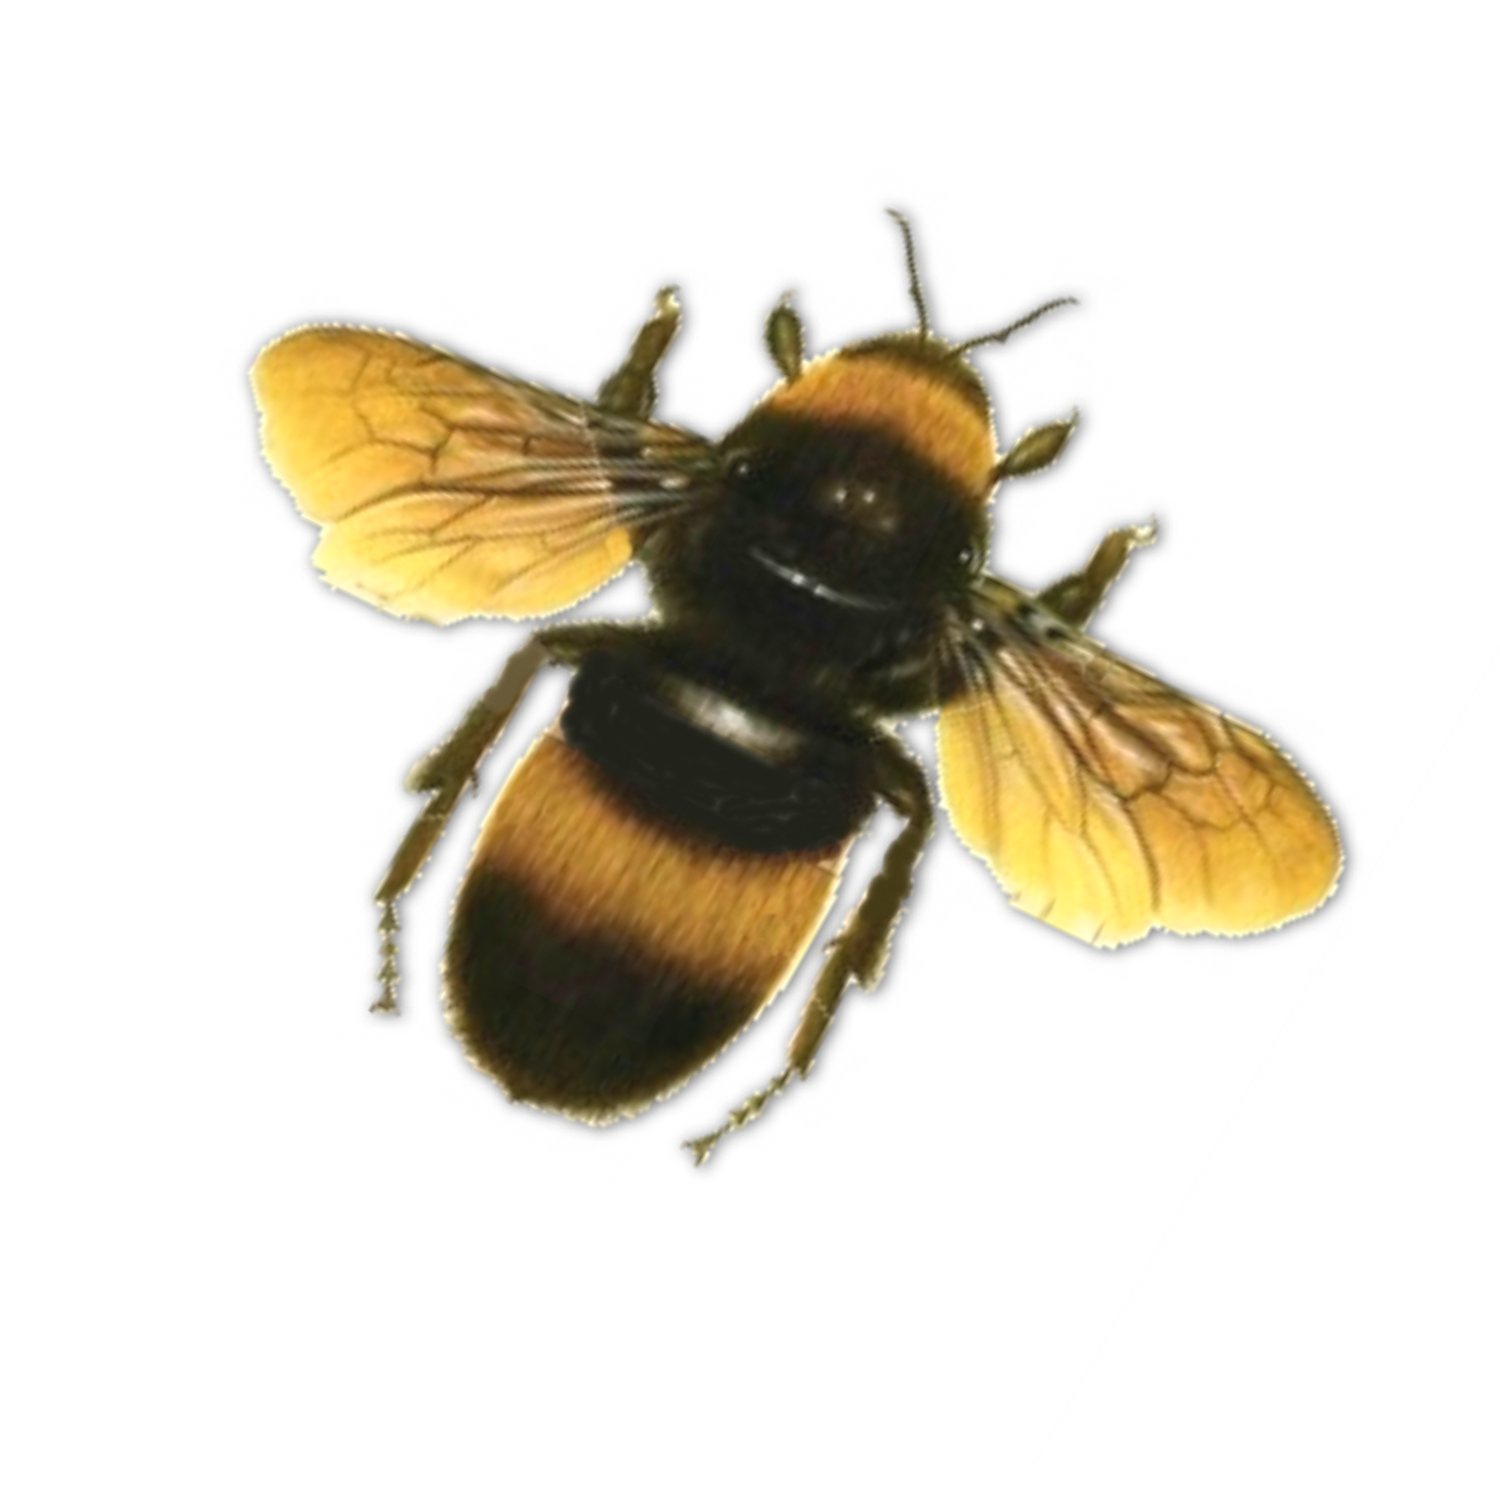 Bee In Png image #45389